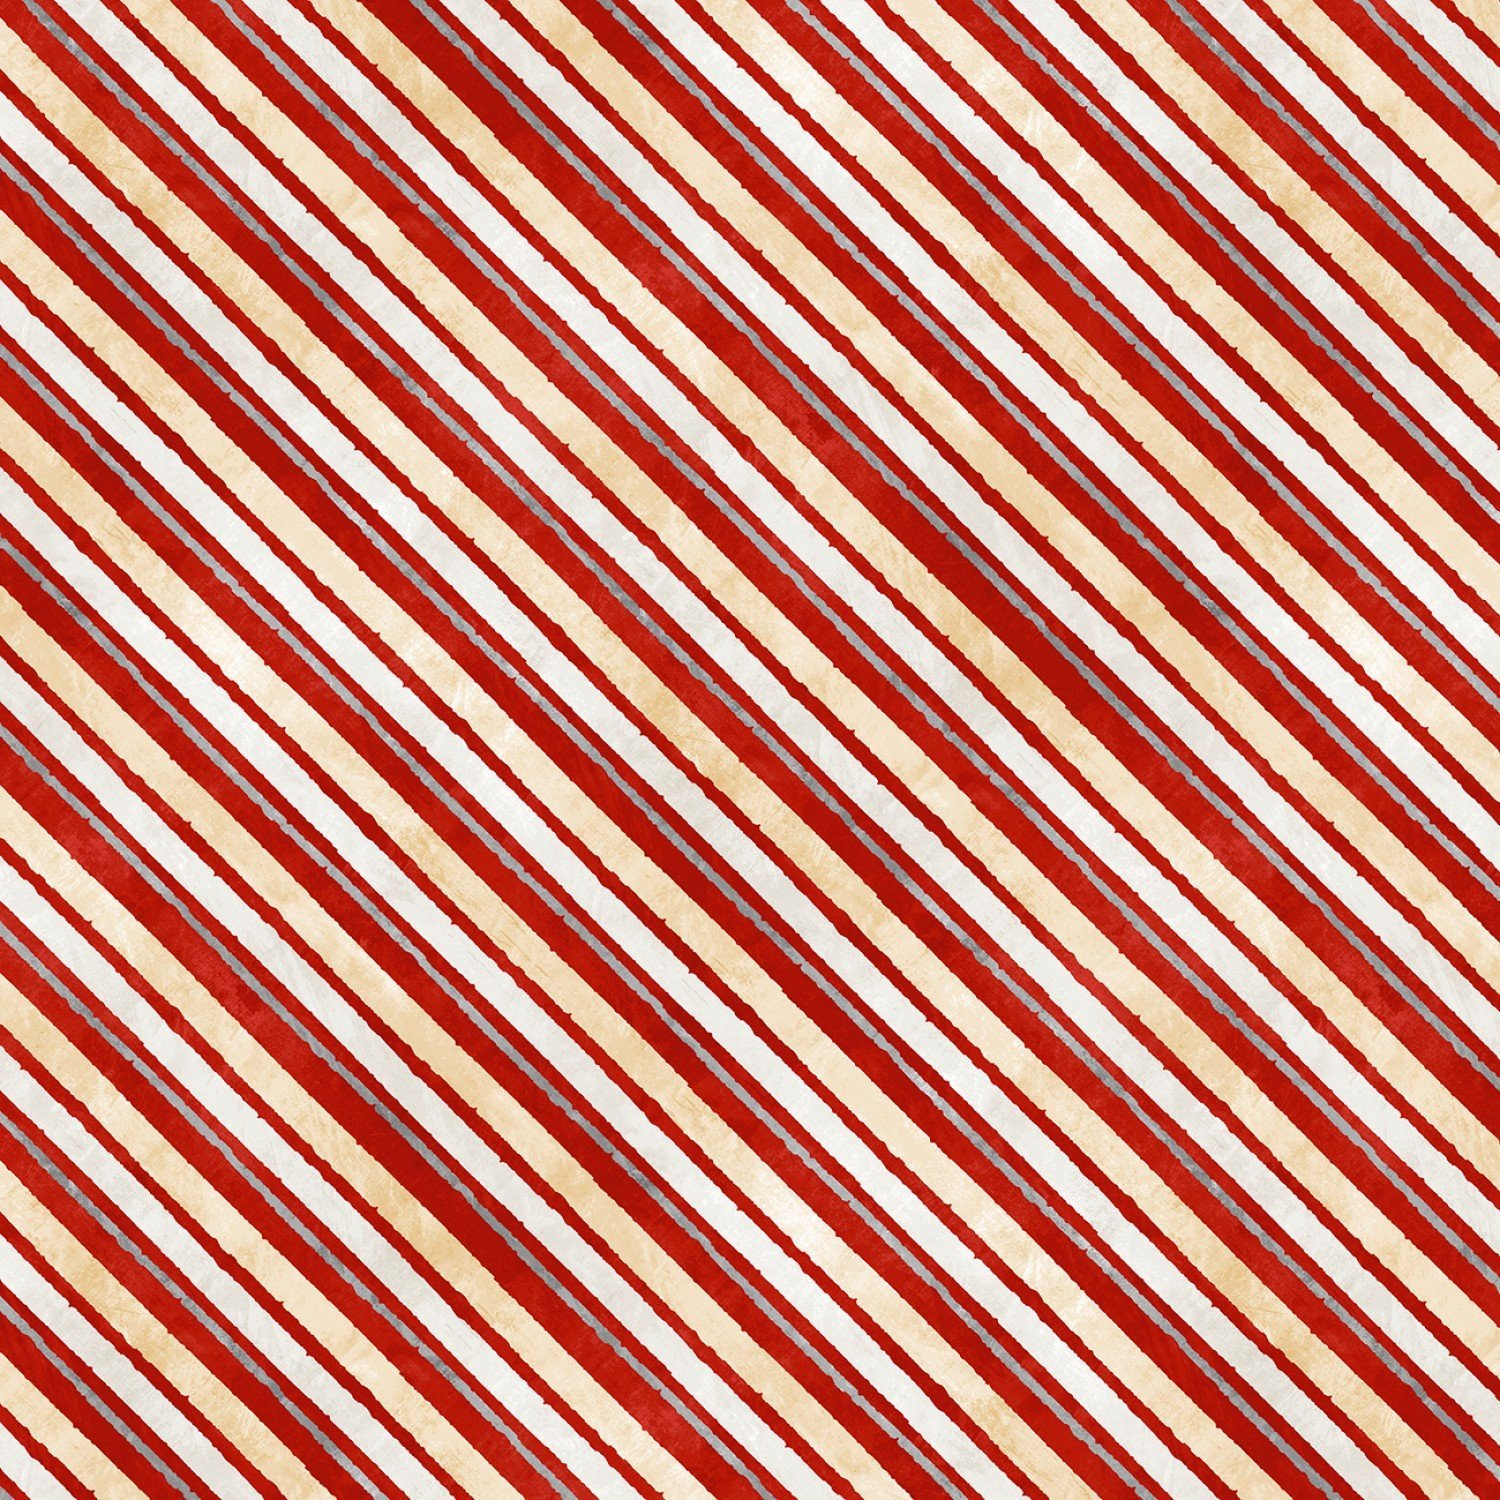 Time For Hot Cocoa - Diagonal Stripe 30528-329 Red